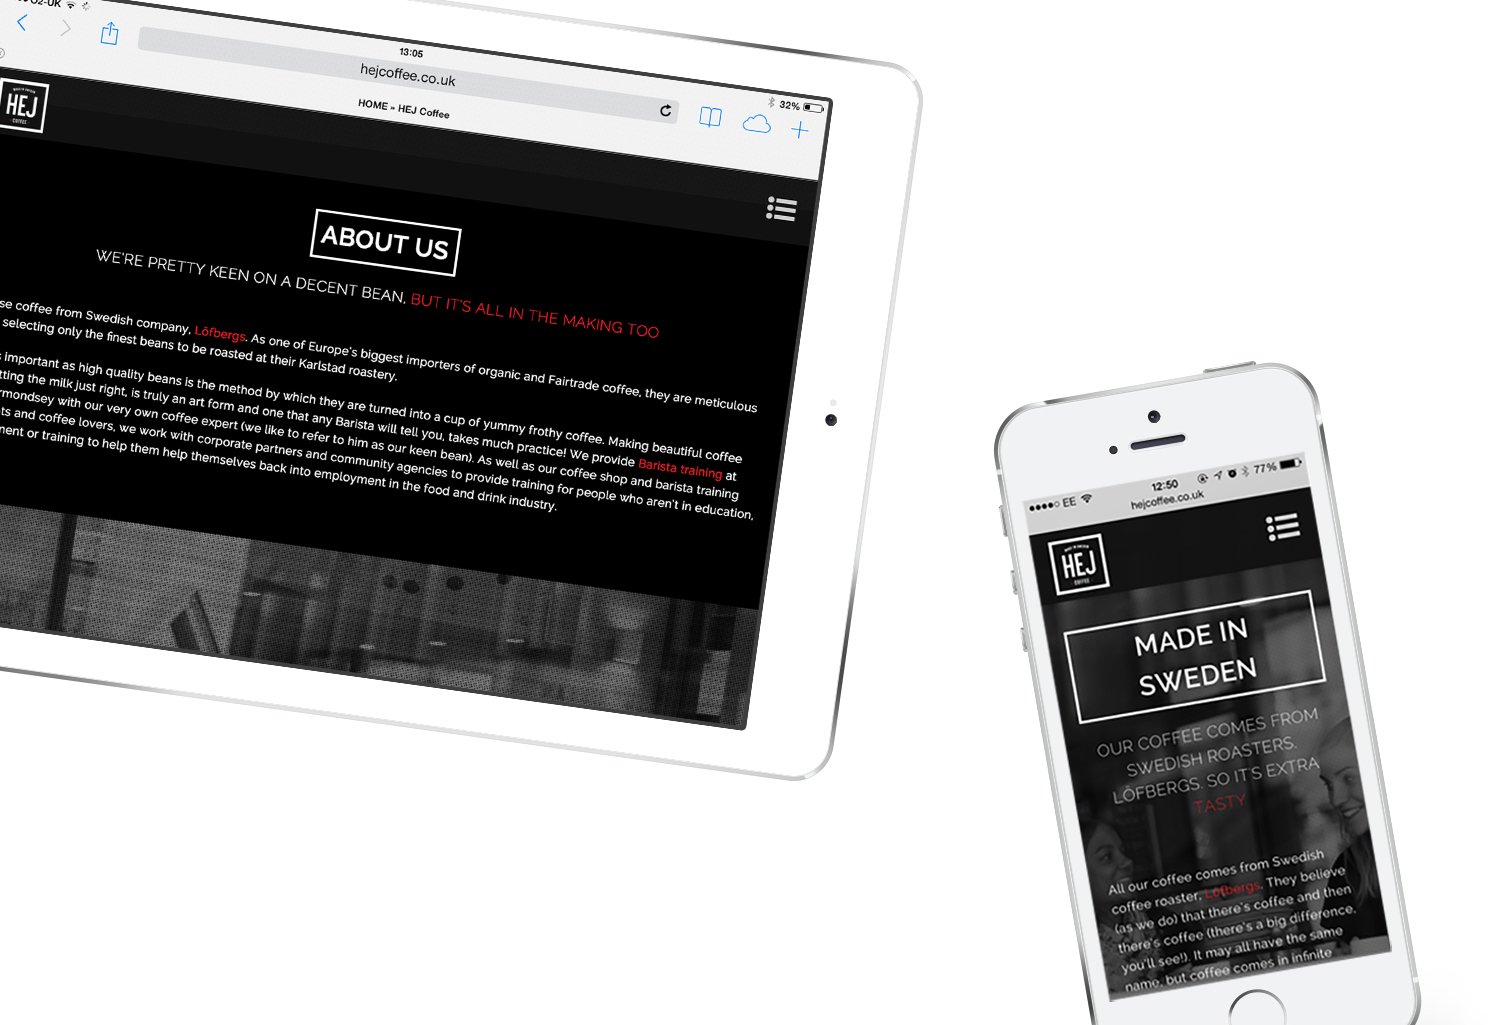 The-Global-Group-Hej-Website-ipad-iphone v2